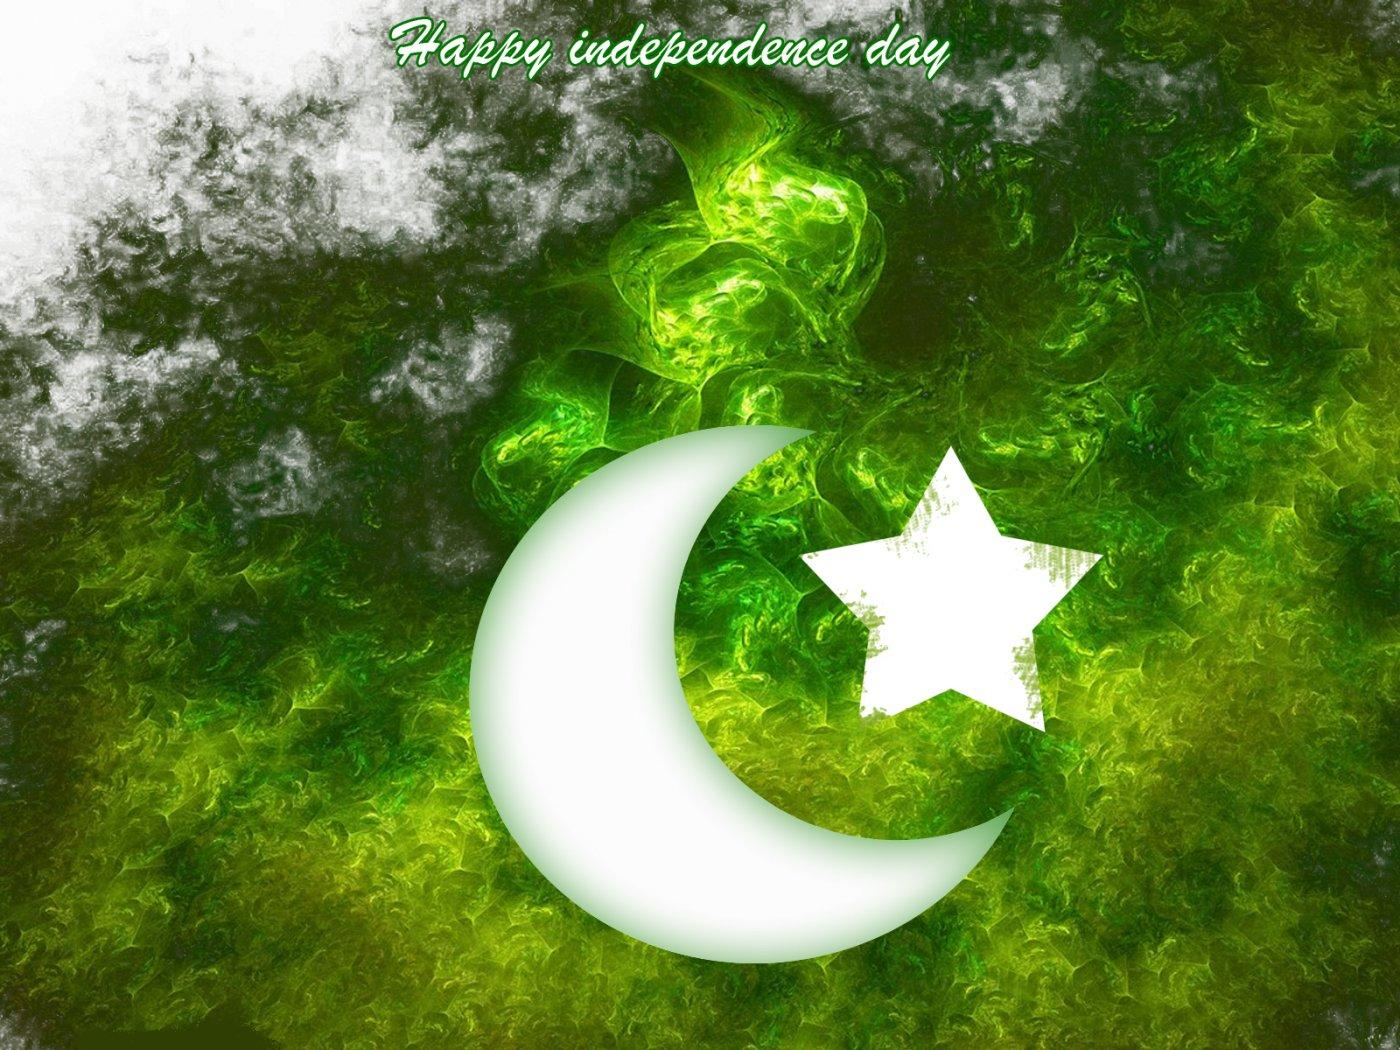 http://4.bp.blogspot.com/-iaCW-uttjFI/Tkbx64etlyI/AAAAAAAABvo/f38HfFnMAzA/s1600/top+10+HD+Computer+and+Mobile+Wallpapers+Of+Pakistani+Flag+-+Happy+Independance+Day+-+14+august+%25281%2529.jpg